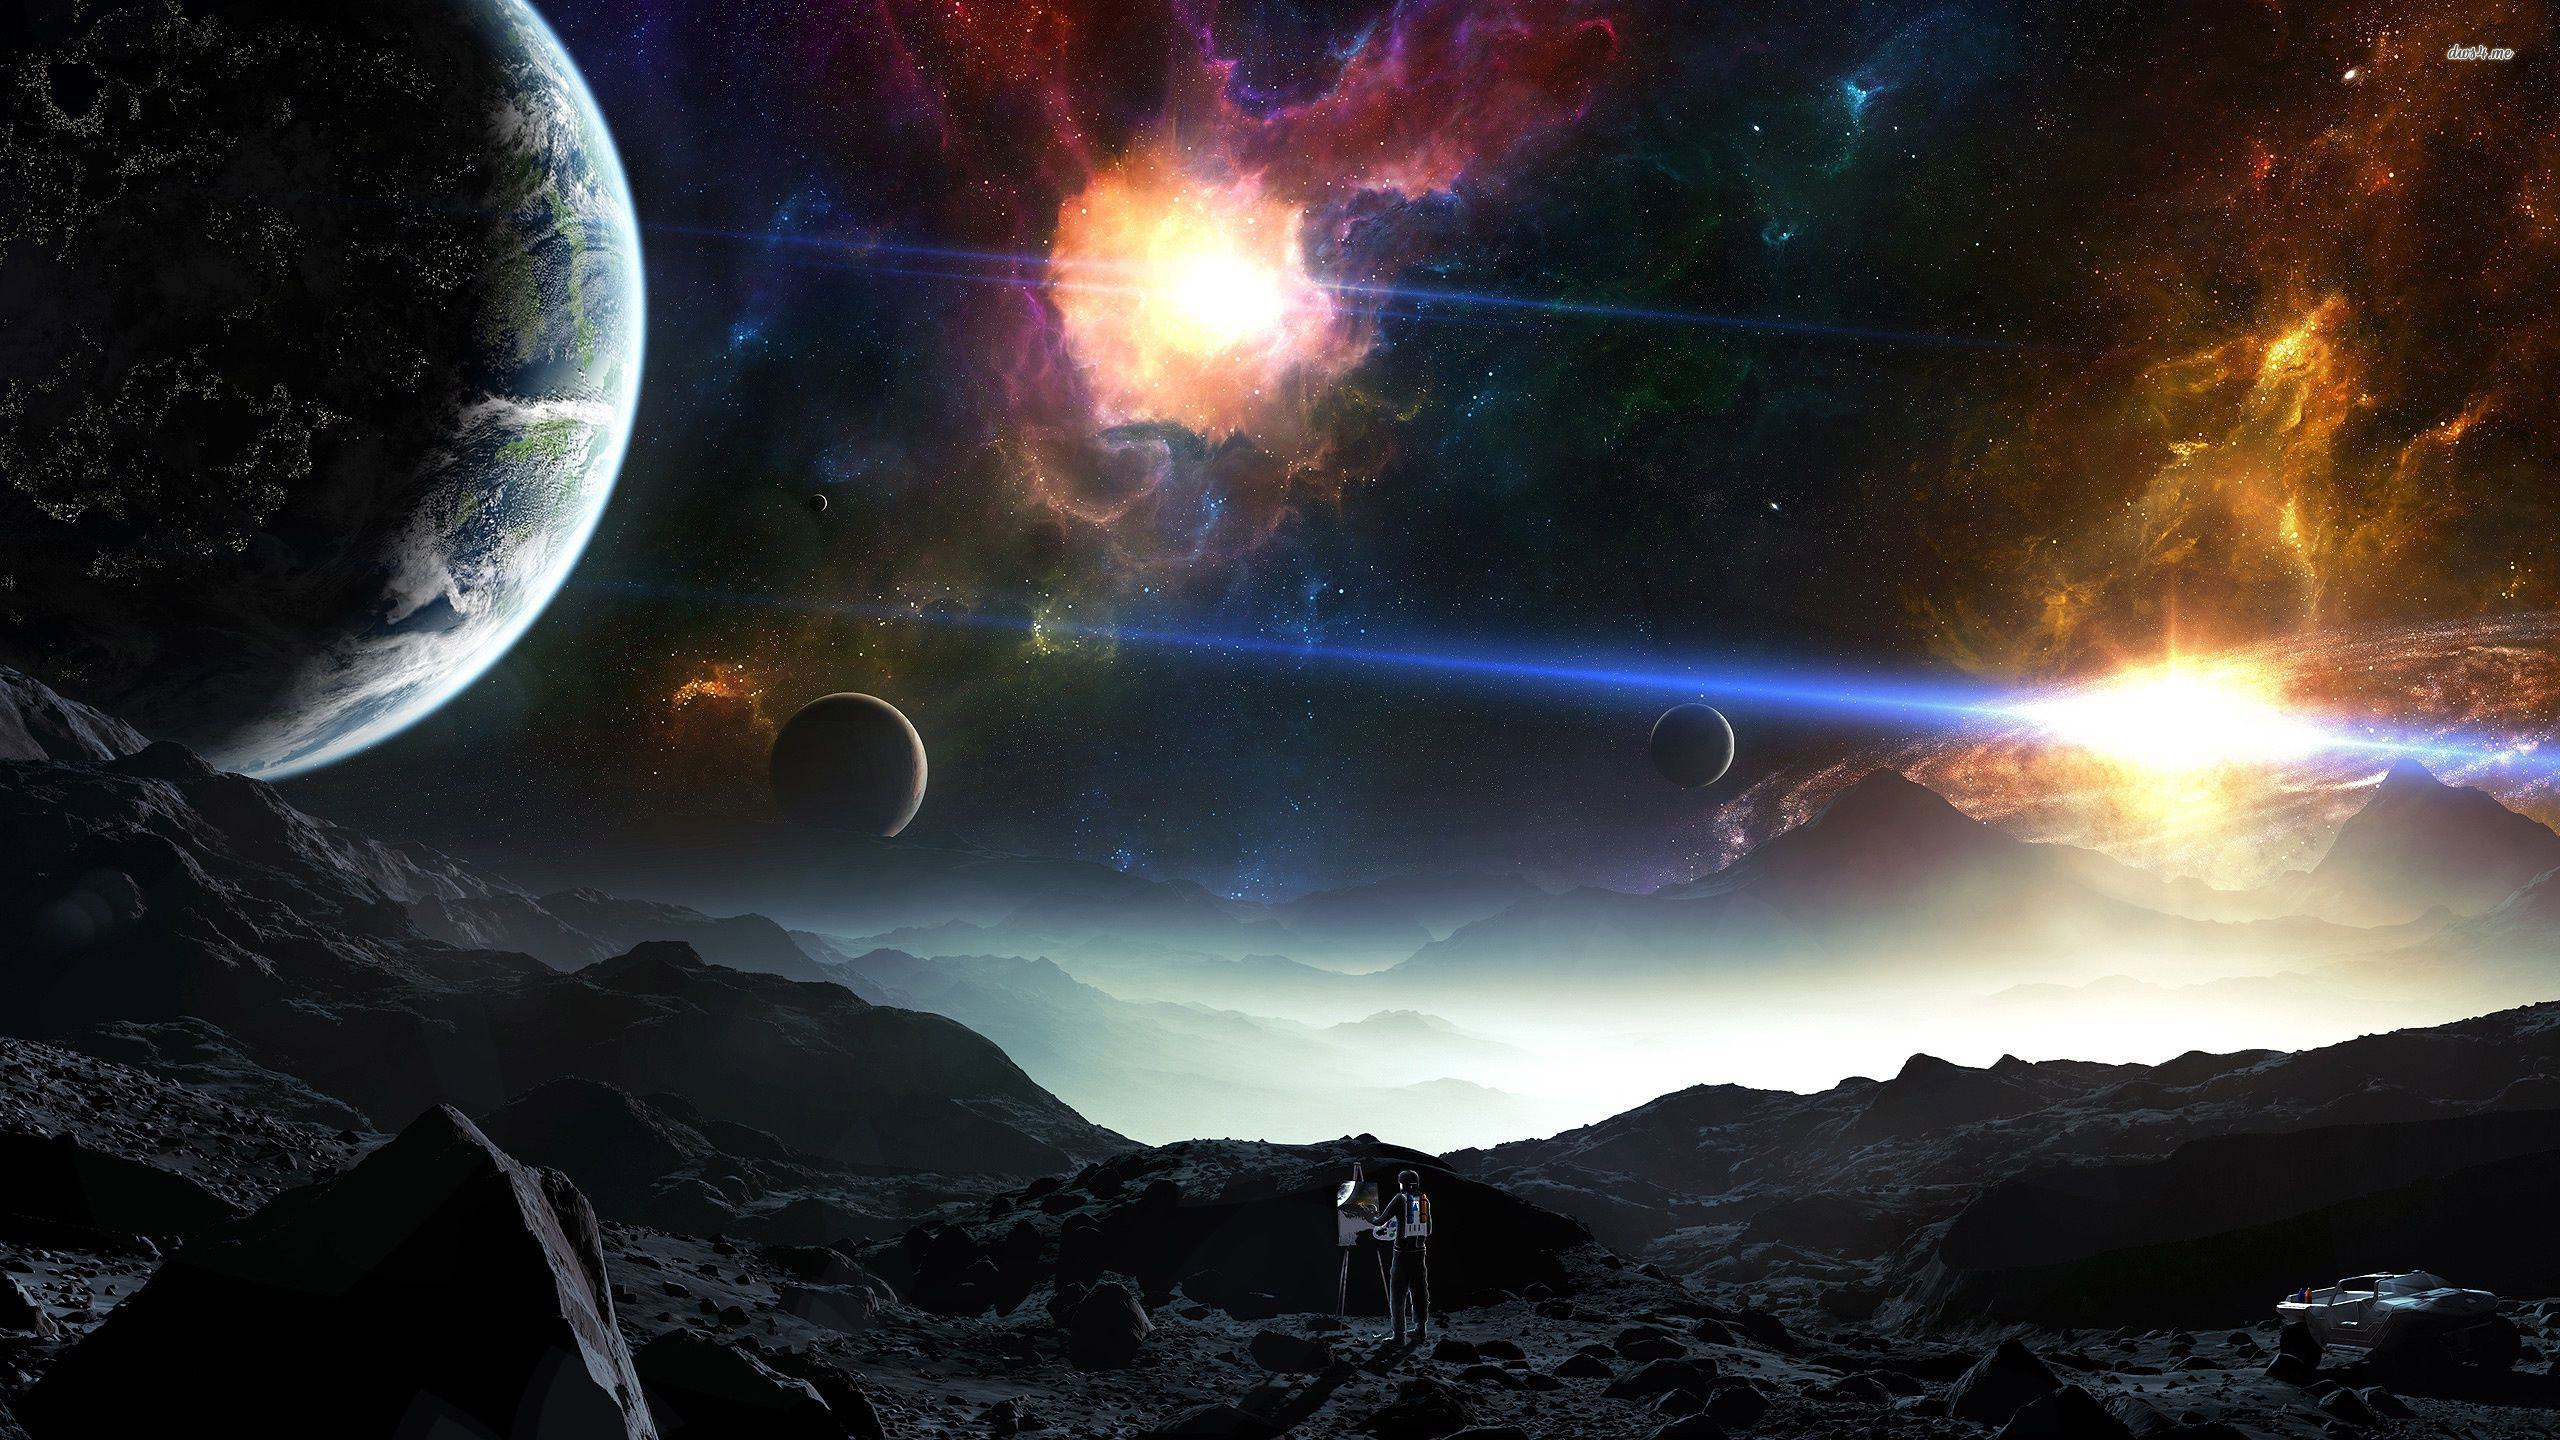 Space Wallpapers Wide 18   Walltiny.   Astronomy   Pinterest   Wallpaper,  Spaces and Hd wallpaper